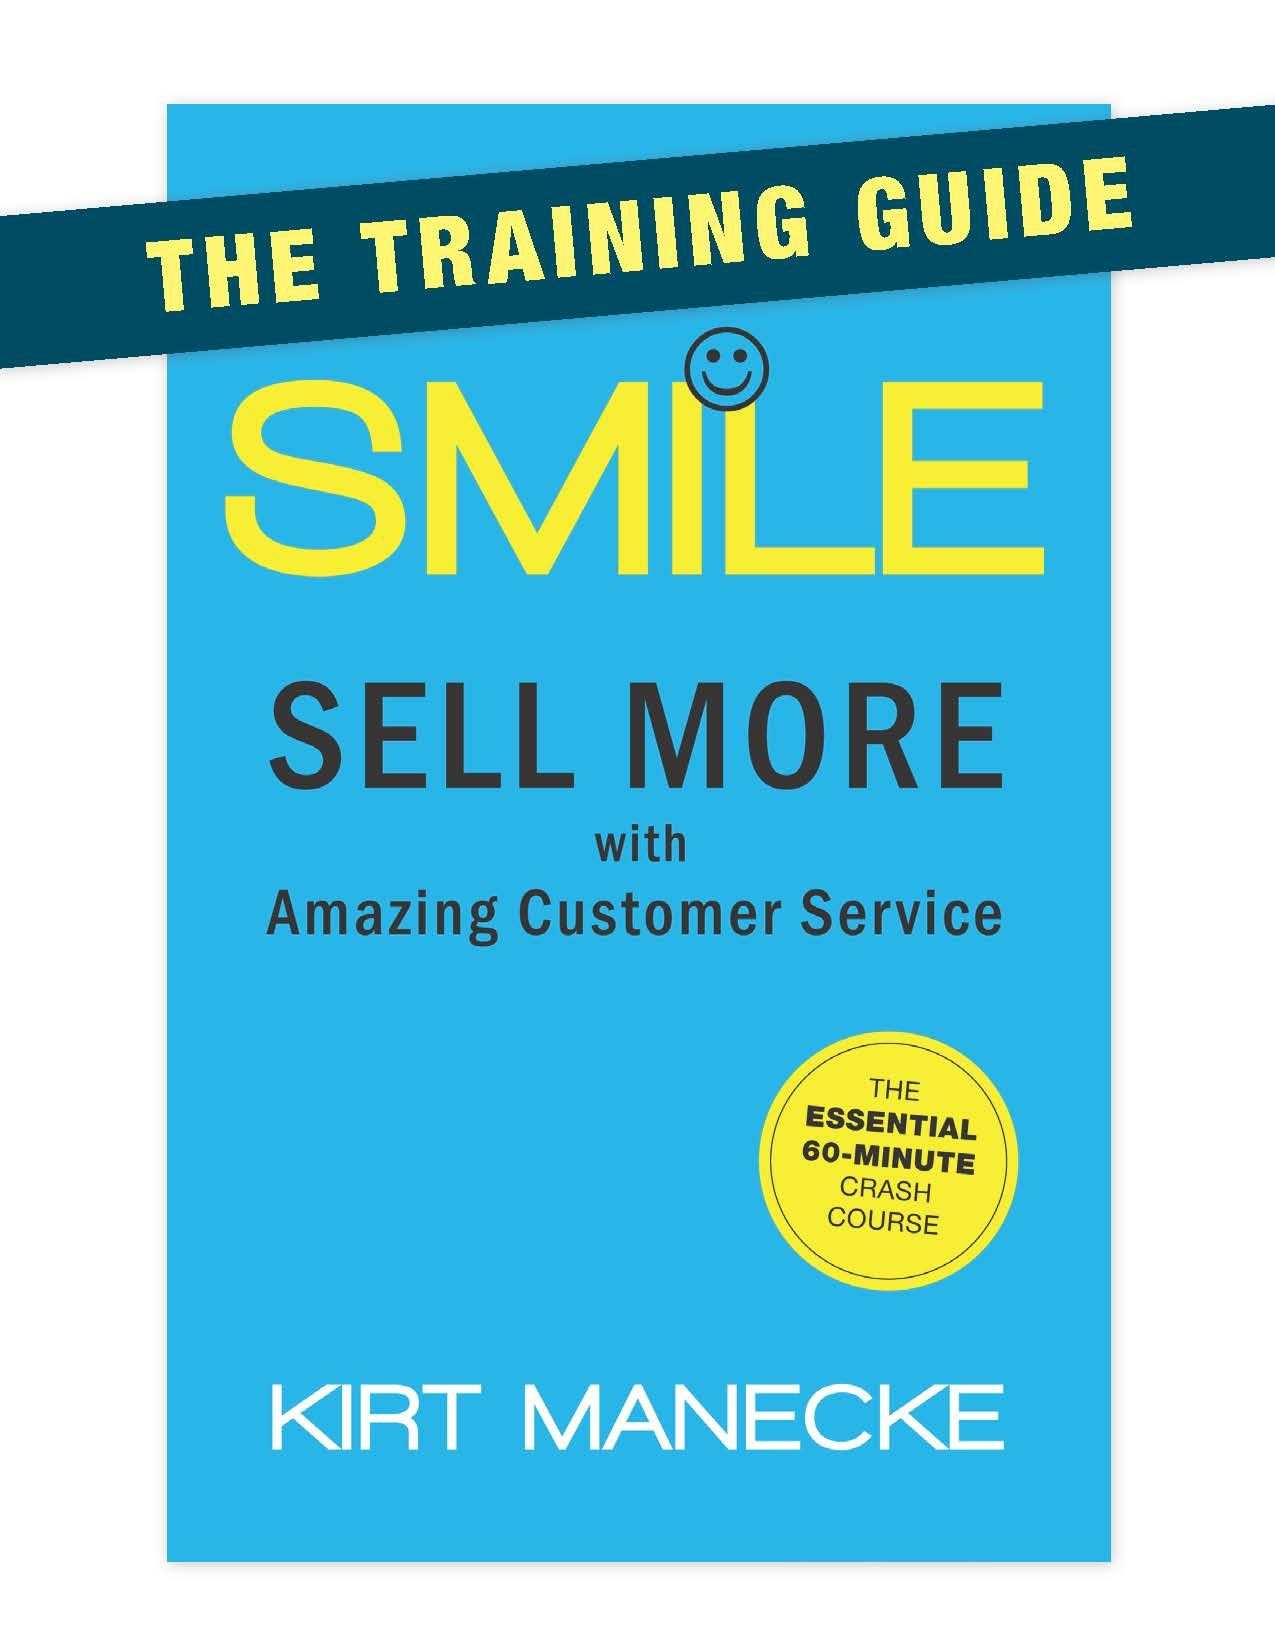 Smile The Training Guide. Train your staff quickly and